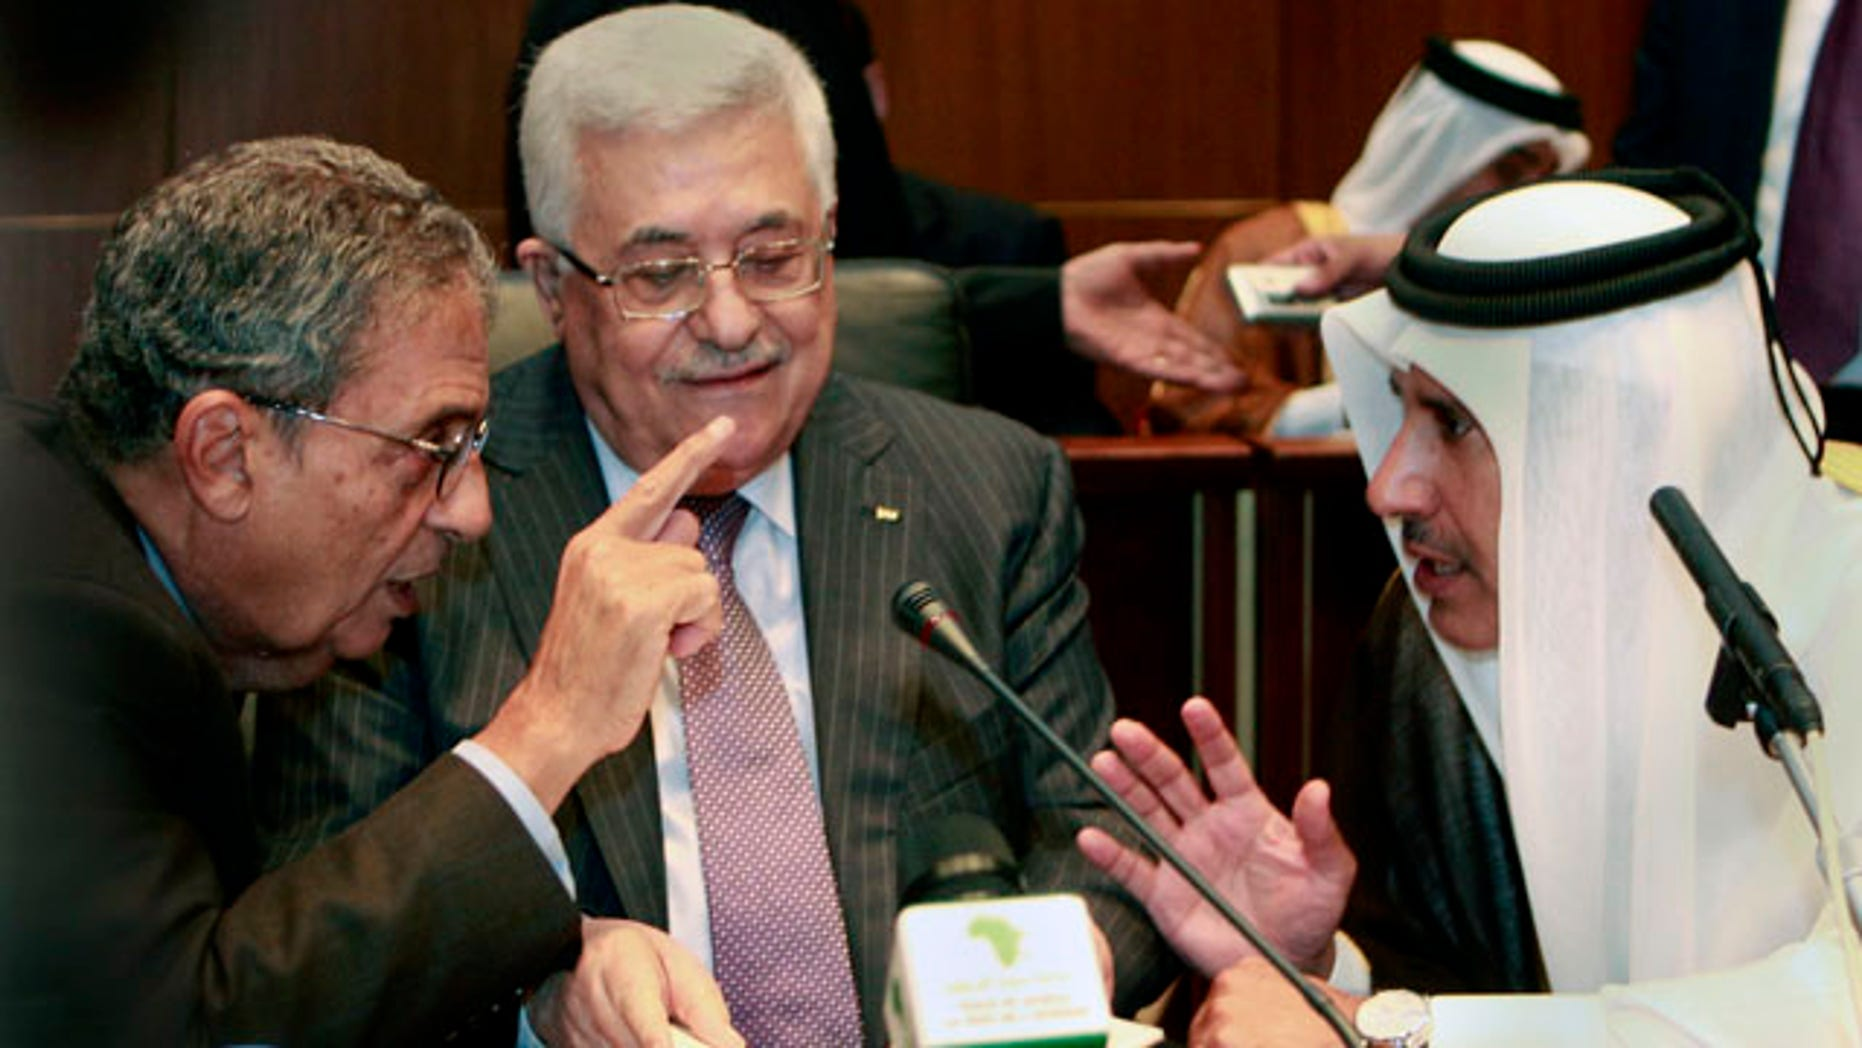 Oct. 8, 2010: Palestinian President Mahmoud Abbas, center, listens to Qatar's Foreign Minister Sheik Hamad Bin Jassem, right and Amr Moussa, Secretary general of the Arab League, during the Arab Foreign Ministers Peace Initiative meeting, in Sirte, Libya.